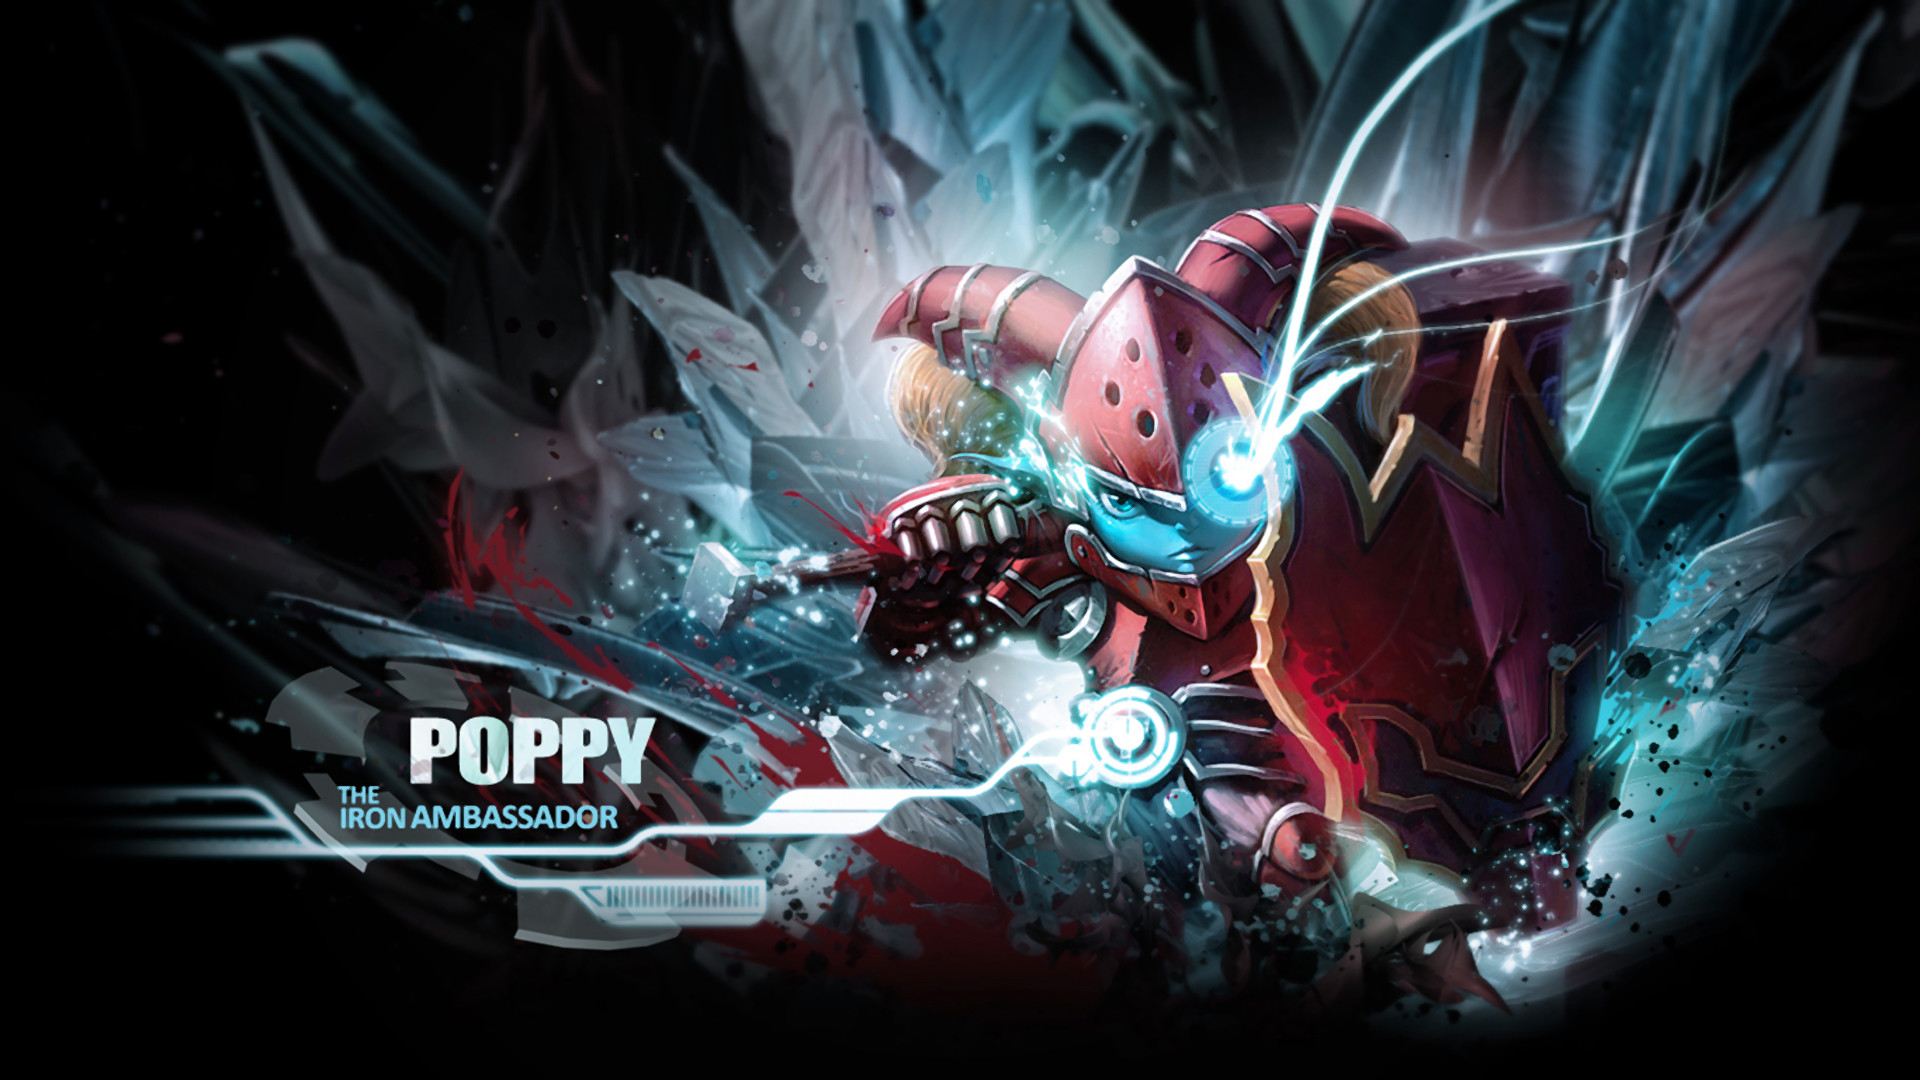 1920x1080 scarlet hammer poppy skin art girl league of legends game hd wallpaper